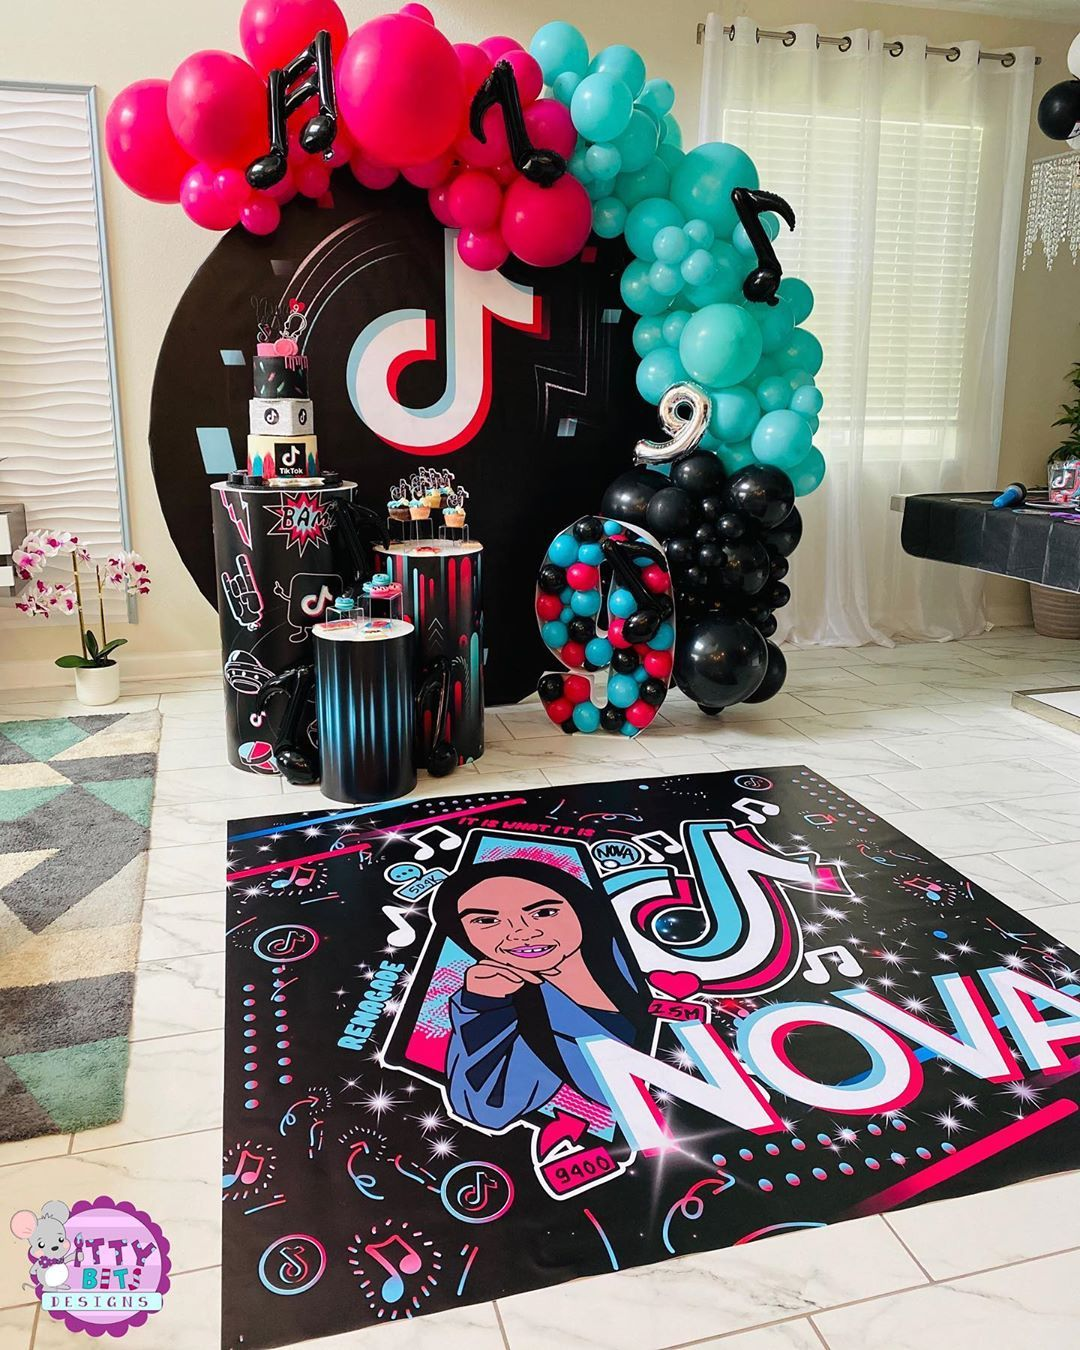 Pin By Sonia Yalibel On Pastel De Cumpleanos Bday Party Kids 12th Birthday Party Ideas Birthday Surprise Party